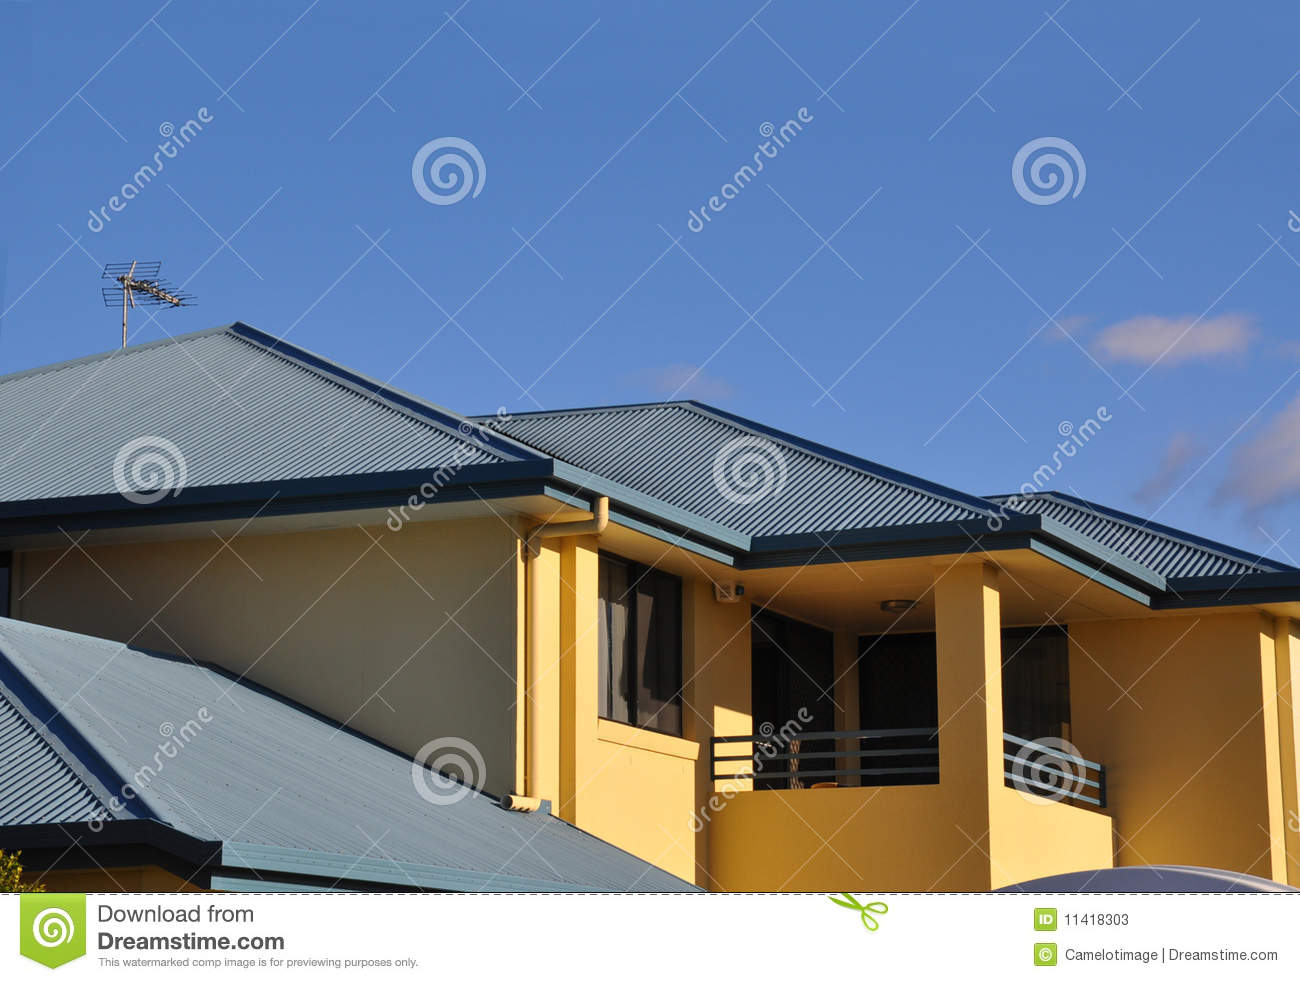 Upper storey of rendered house with metal roof